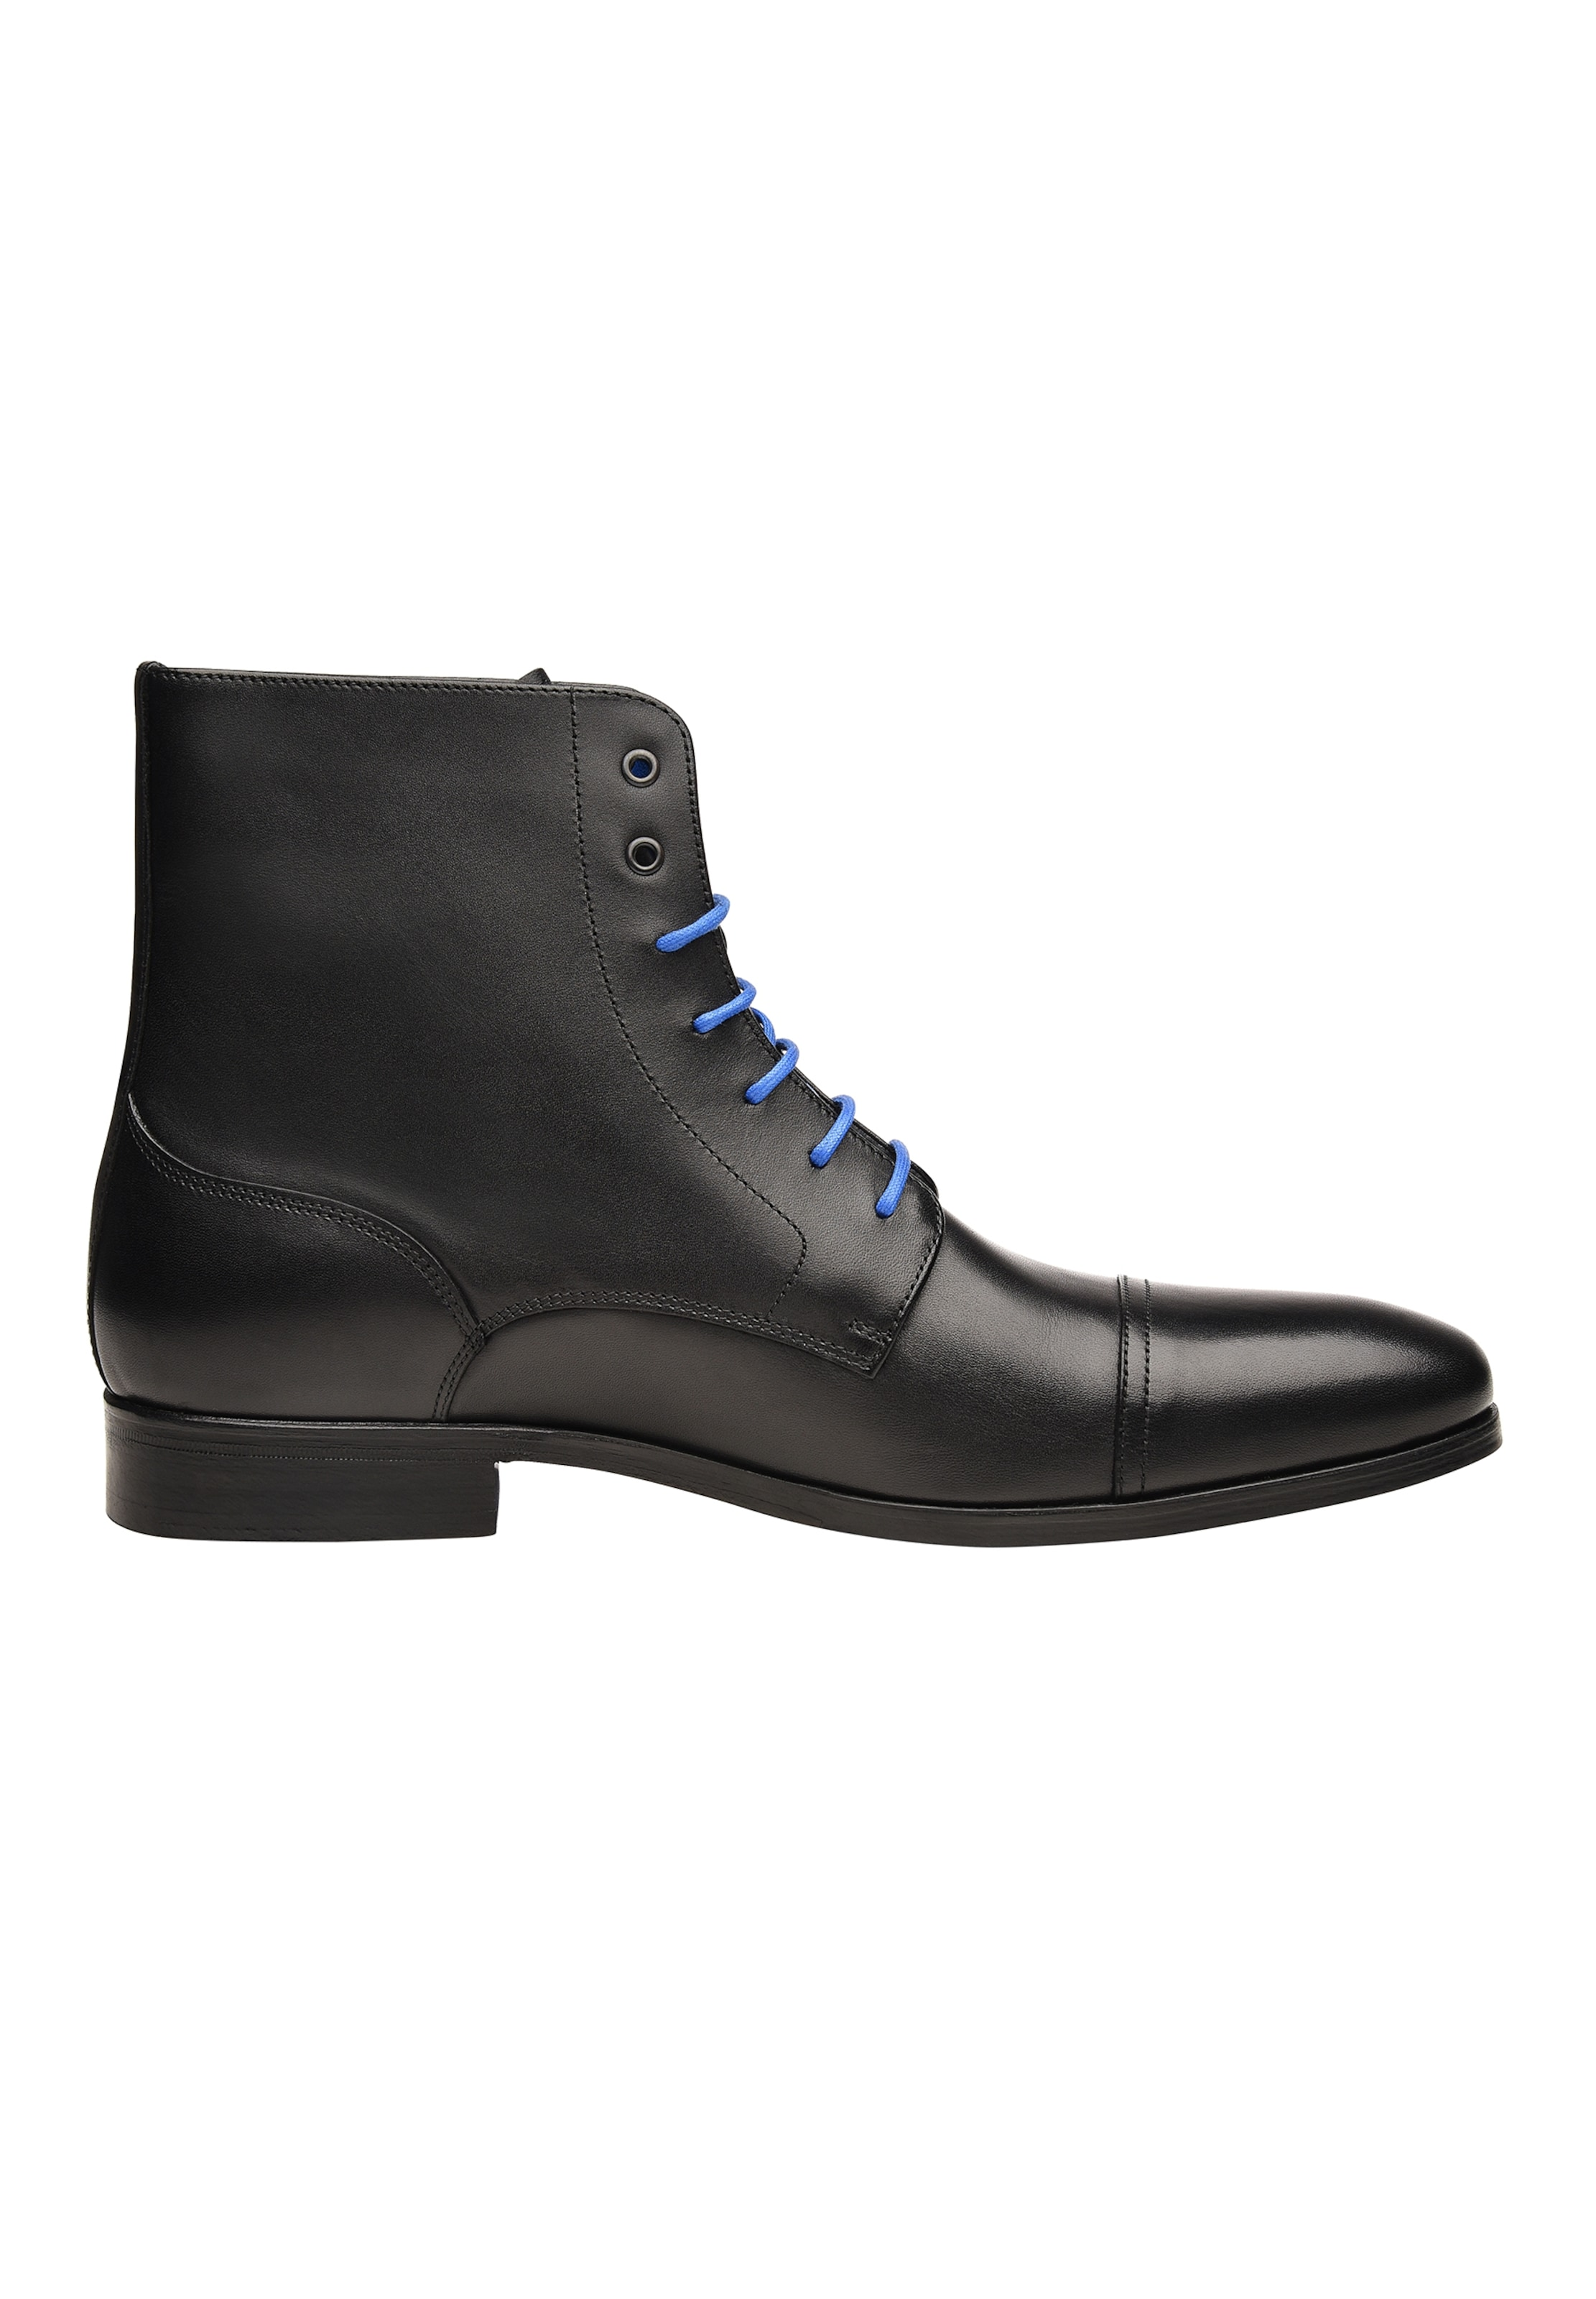 Bl' 'no6825 In BlauSchwarz Shoepassion Boots OPk80nw